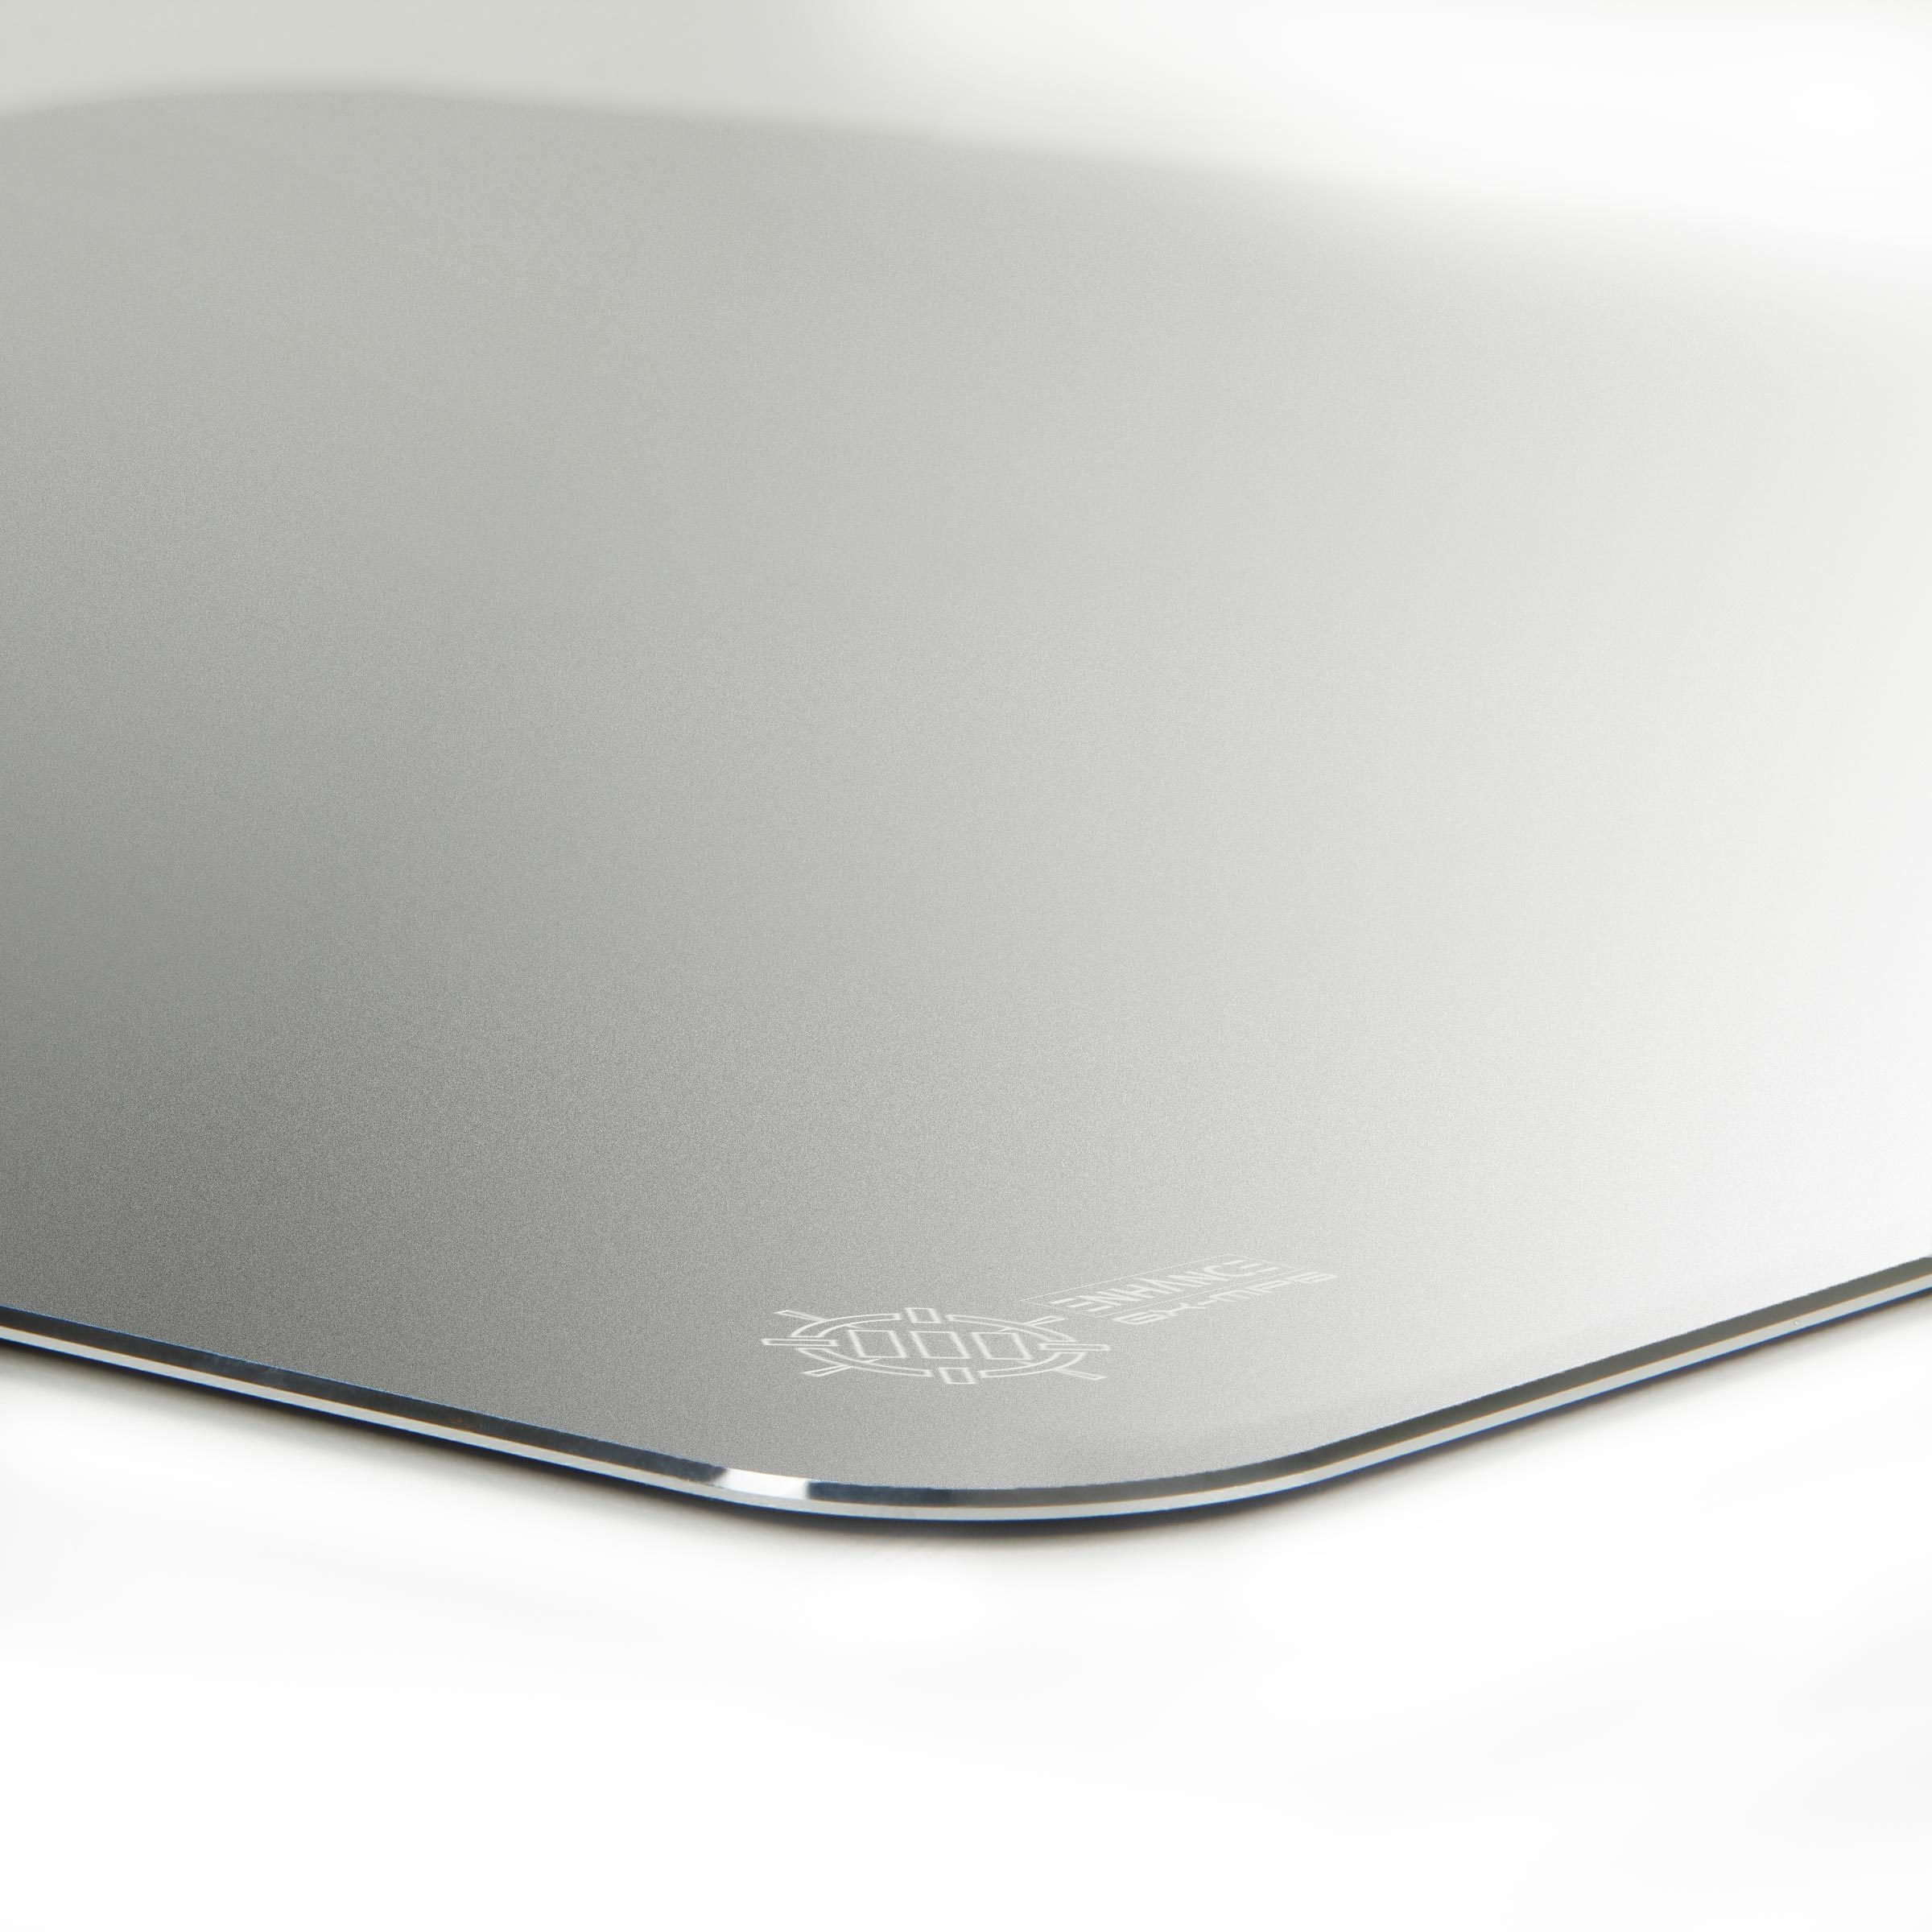 ENHANCE GX-MP6 Gaming Aluminum Mouse Pad with Natural Rubber Backing & Low-Friction Tracking Surface 3